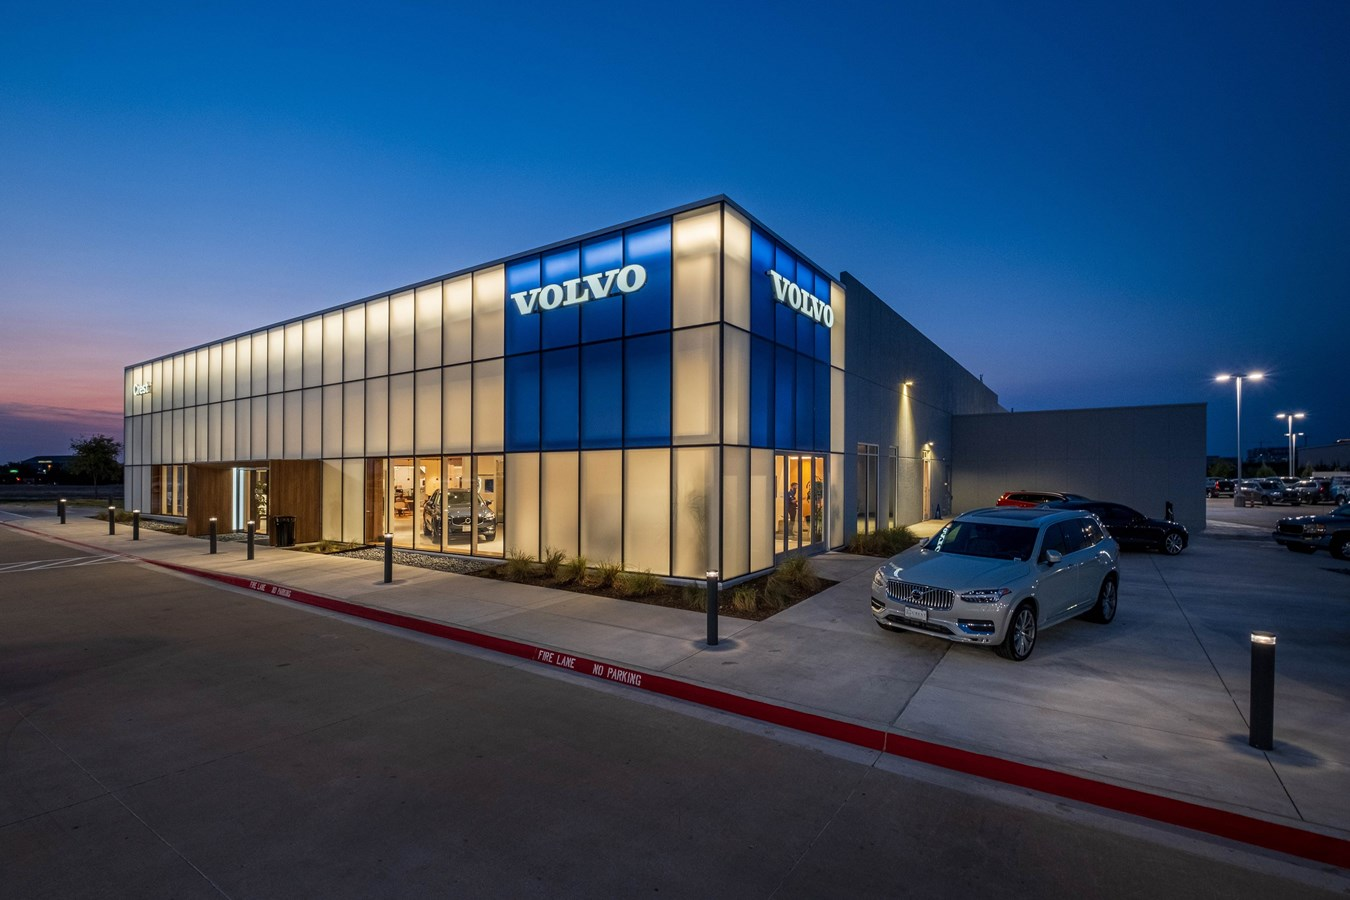 Volvo Dallas Retailer